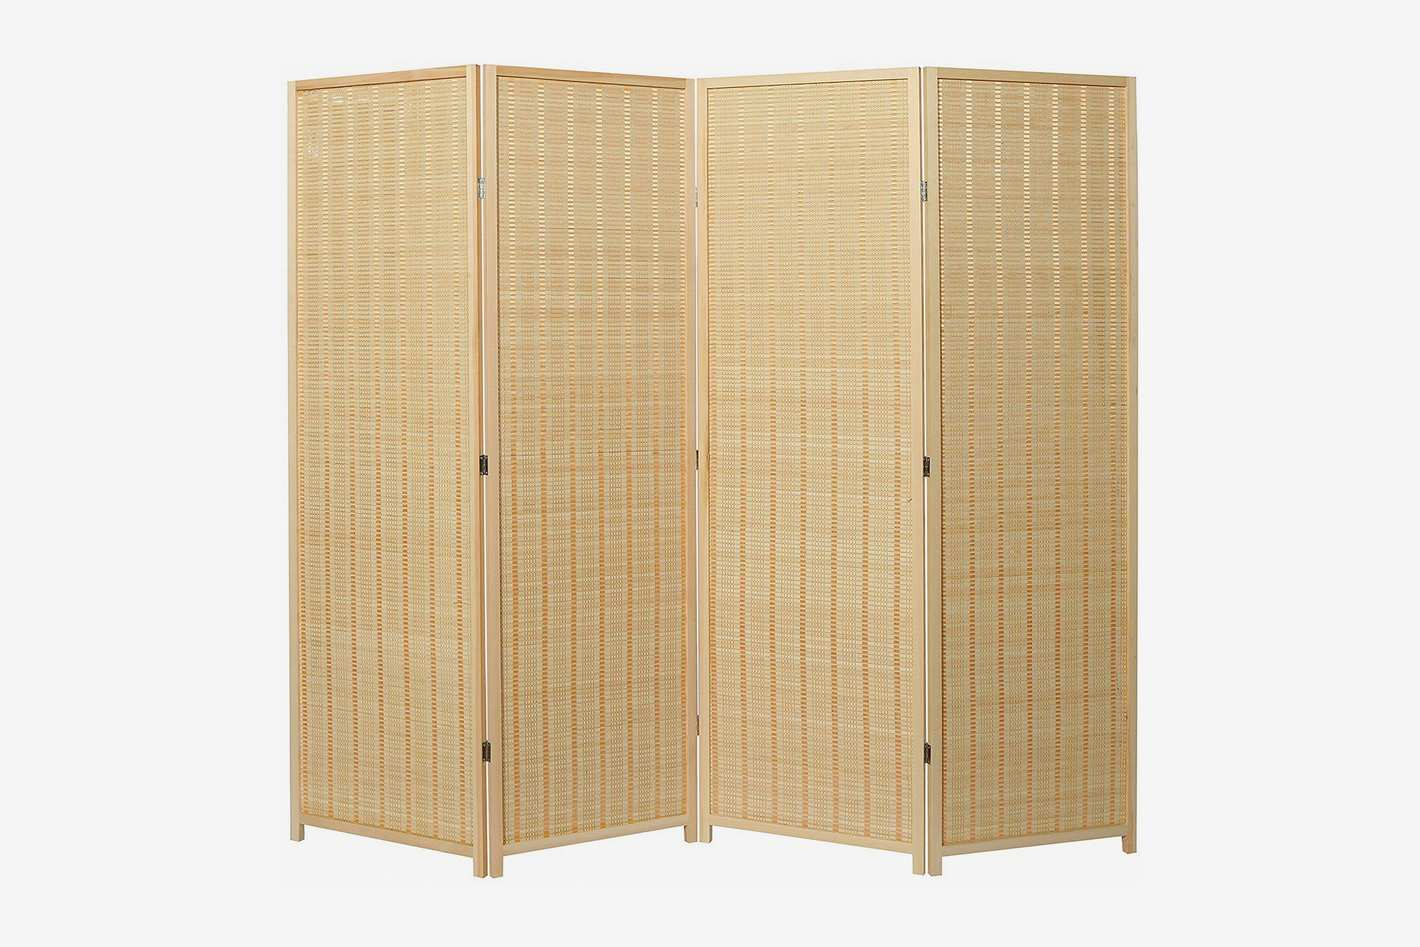 MyGift 4-Panel Woven Bamboo Folding Room Divider